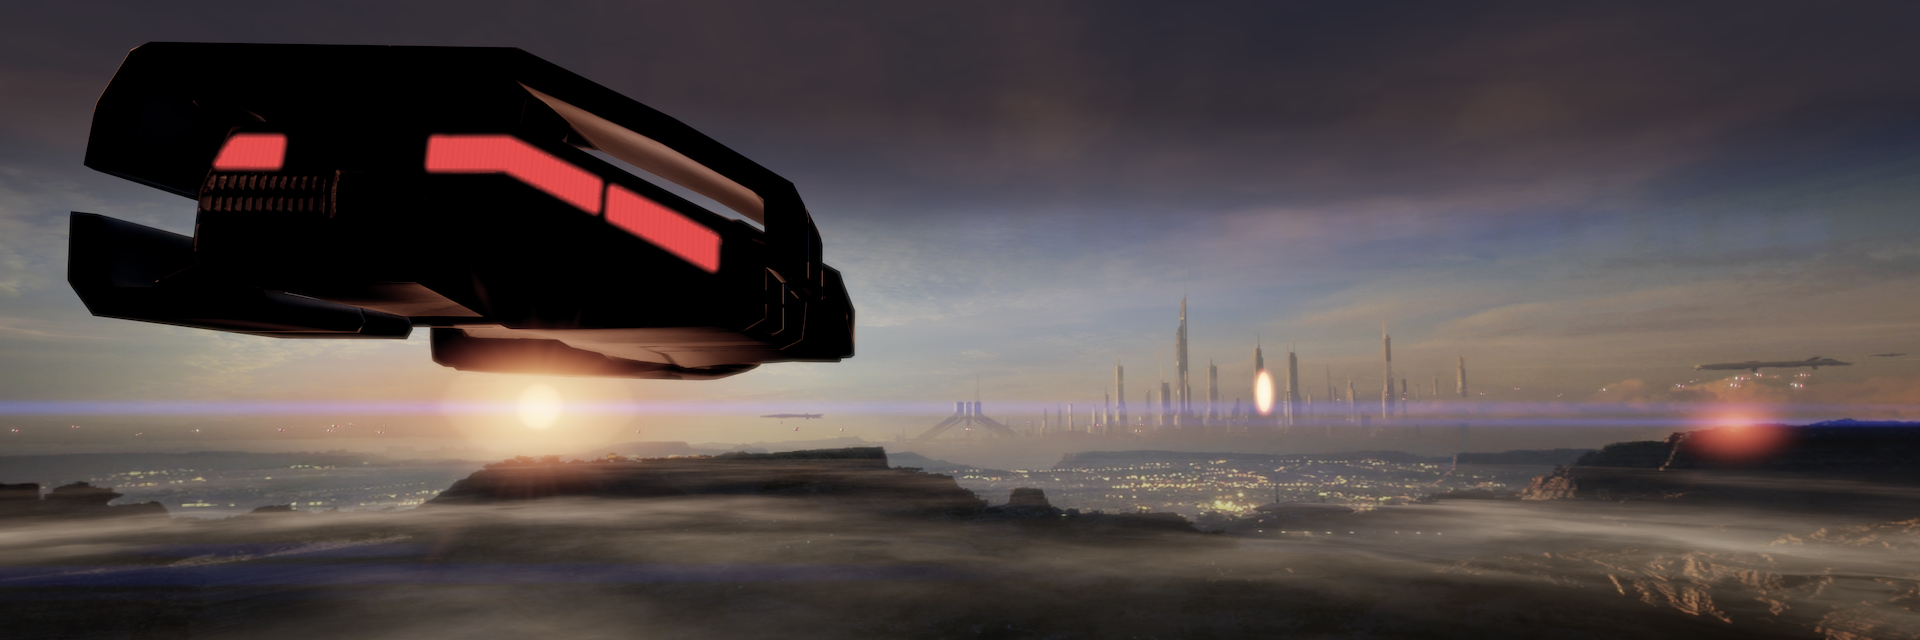 twilightsgleaming.png - Mass Effect 2